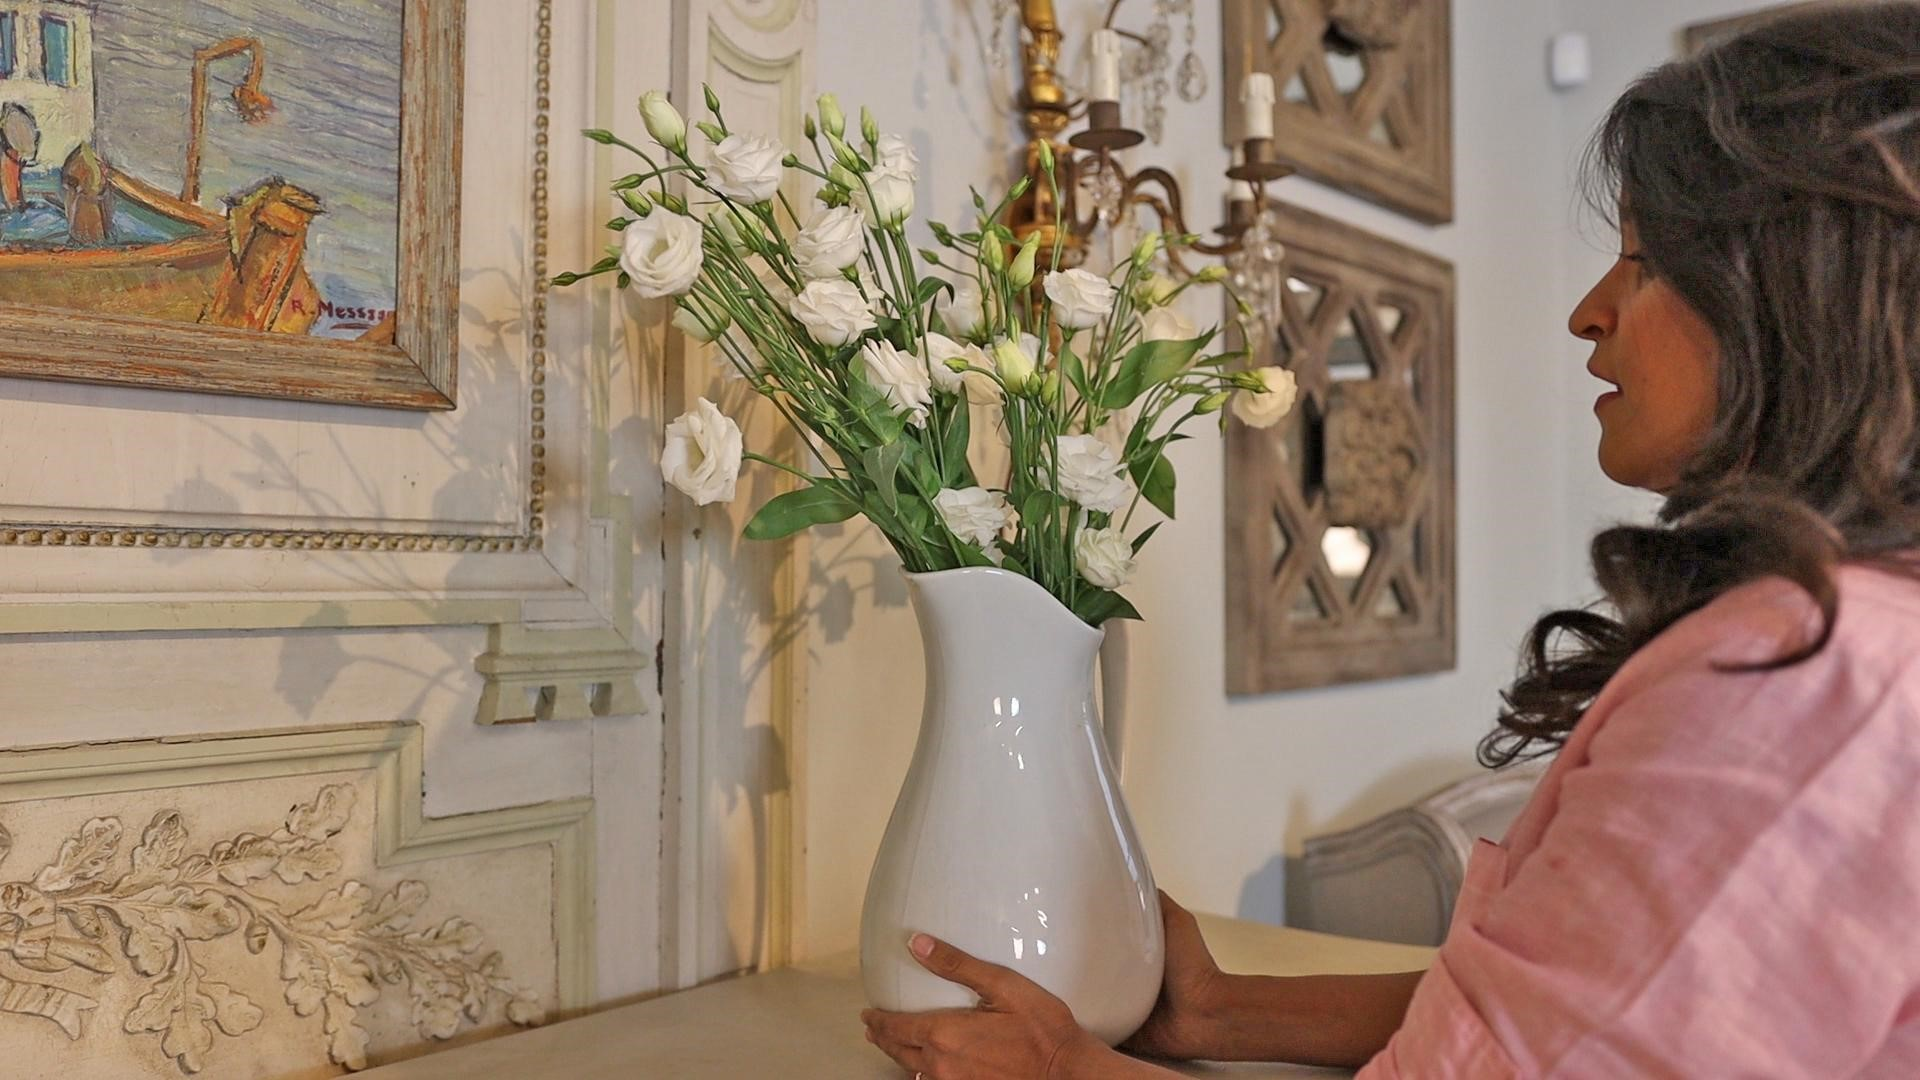 Amitha placing tall lisianthus flower arrangement in white ironstone pitcher on buffet